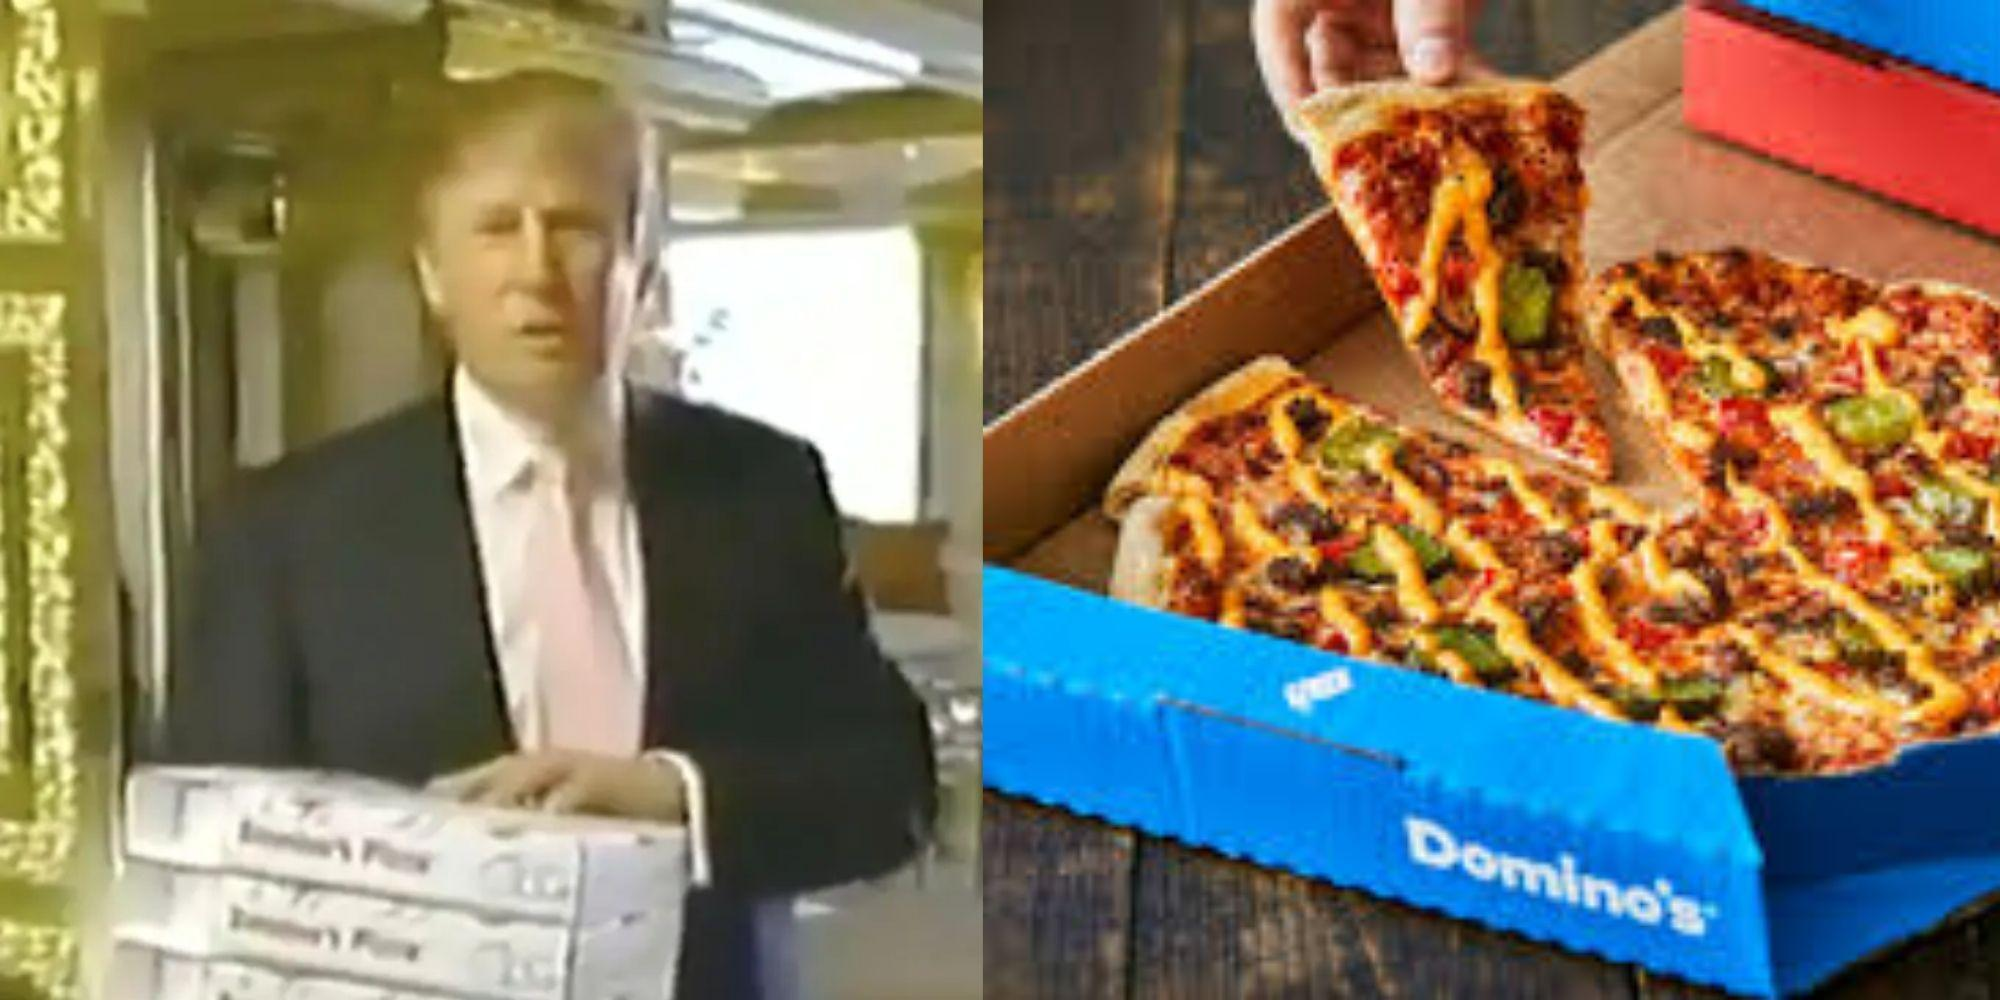 Trump News President S 2005 Domino S Pizza Advert Resurfaces Online Indy100